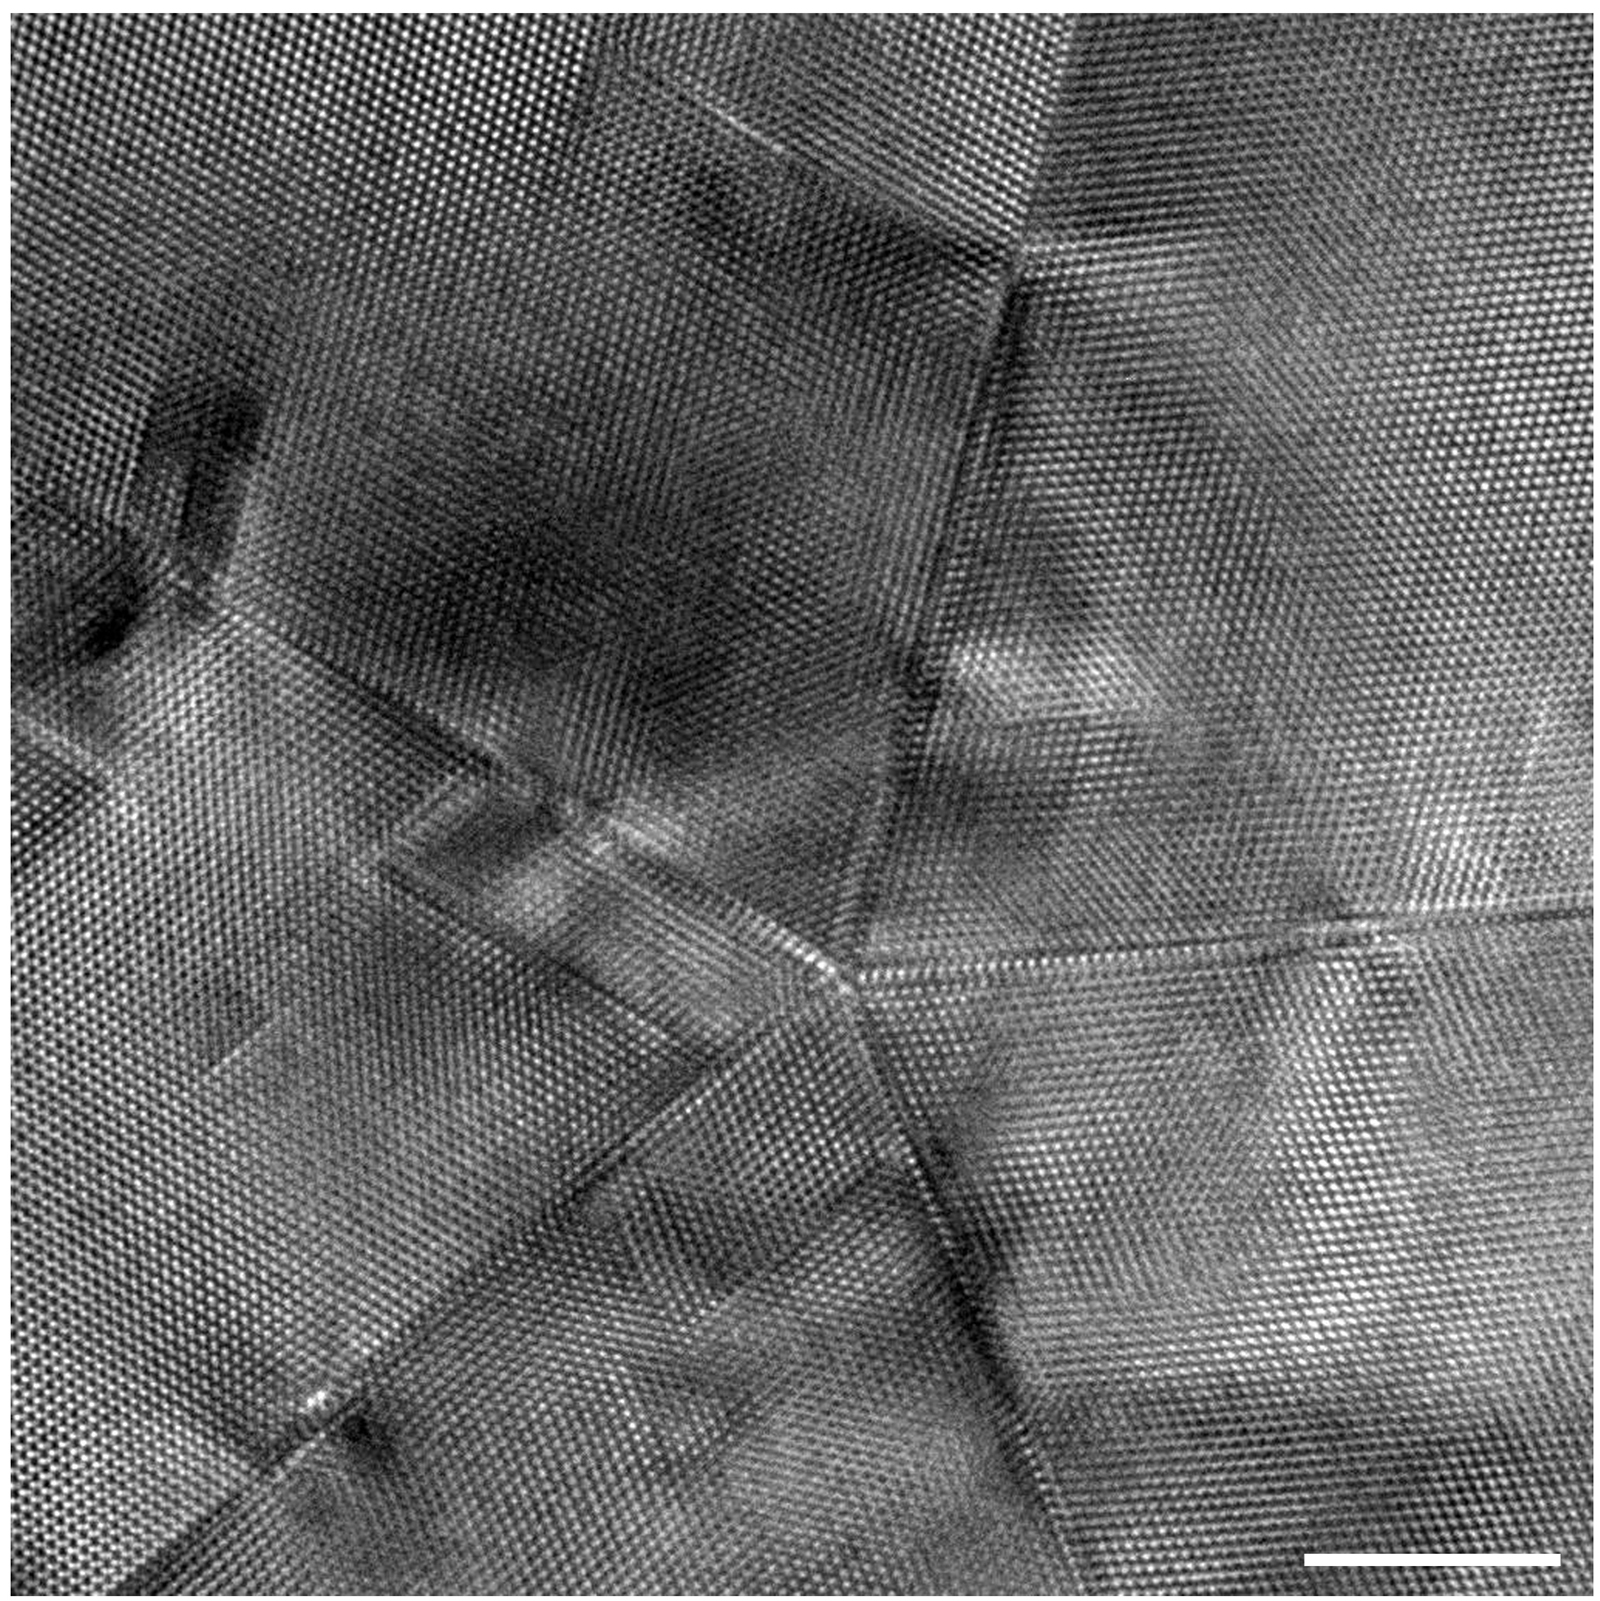 A high-resolution transmission electron microscopy image of the core of a single silver nanowire. The scale bar represents 5 nm in length. The image was taken on the Argonne Chromatic Aberration-corrected TEM (ACAT) machine.